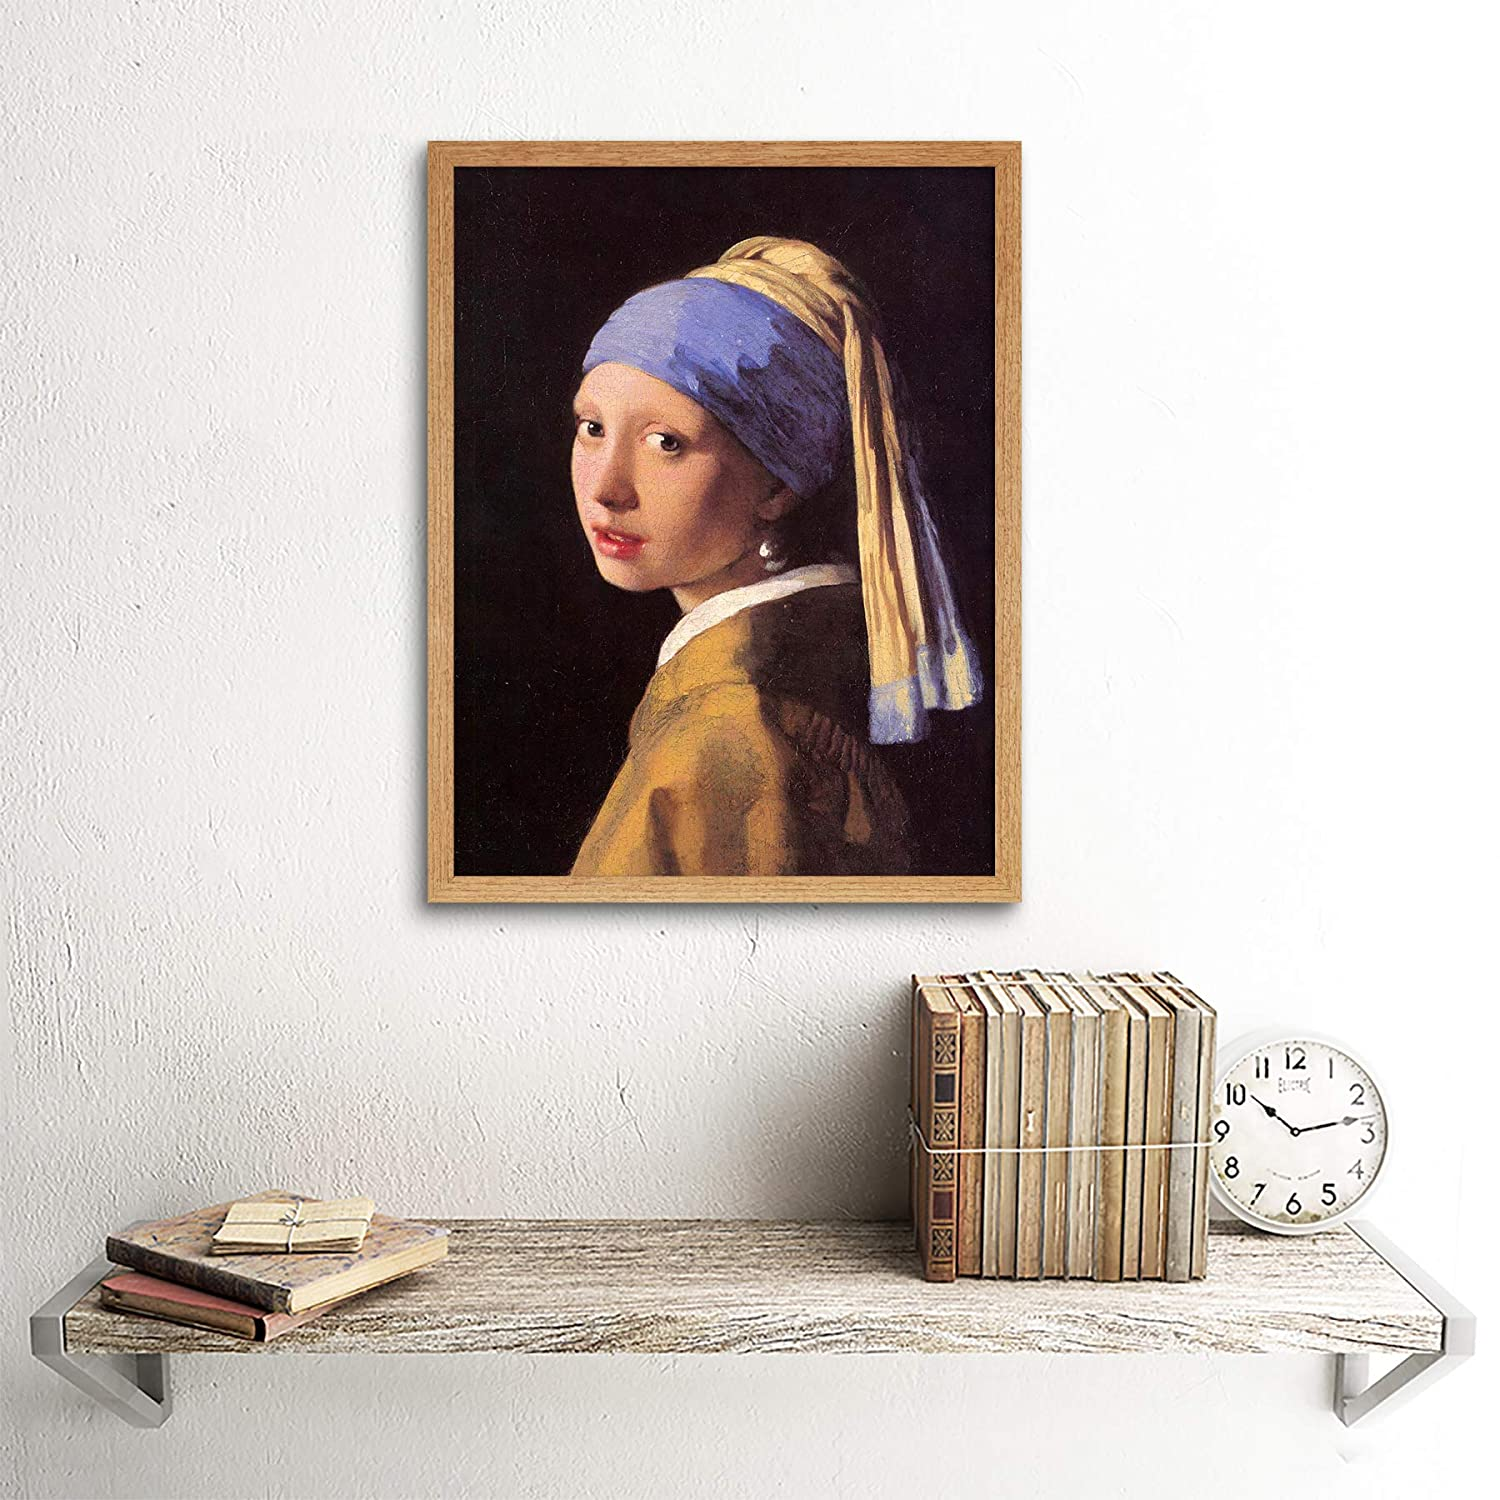 Wee Blue Coo Johannes Vermeer Girl with Pearl Earring Old Master Painting Unframed Wall Art Print Poster Home Decor Premium